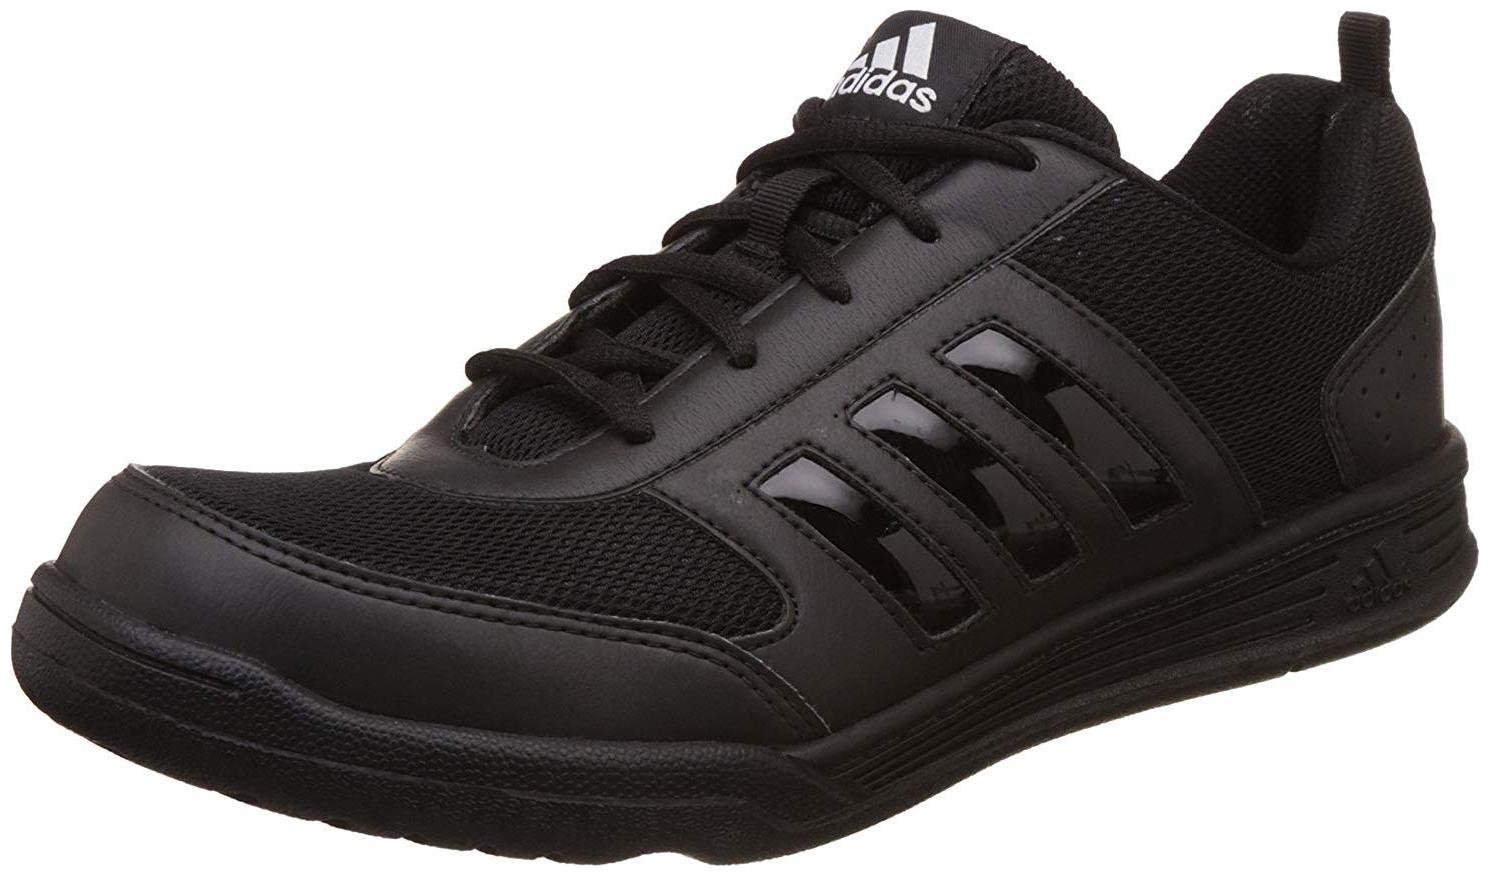 Adidas Black Running Shoes